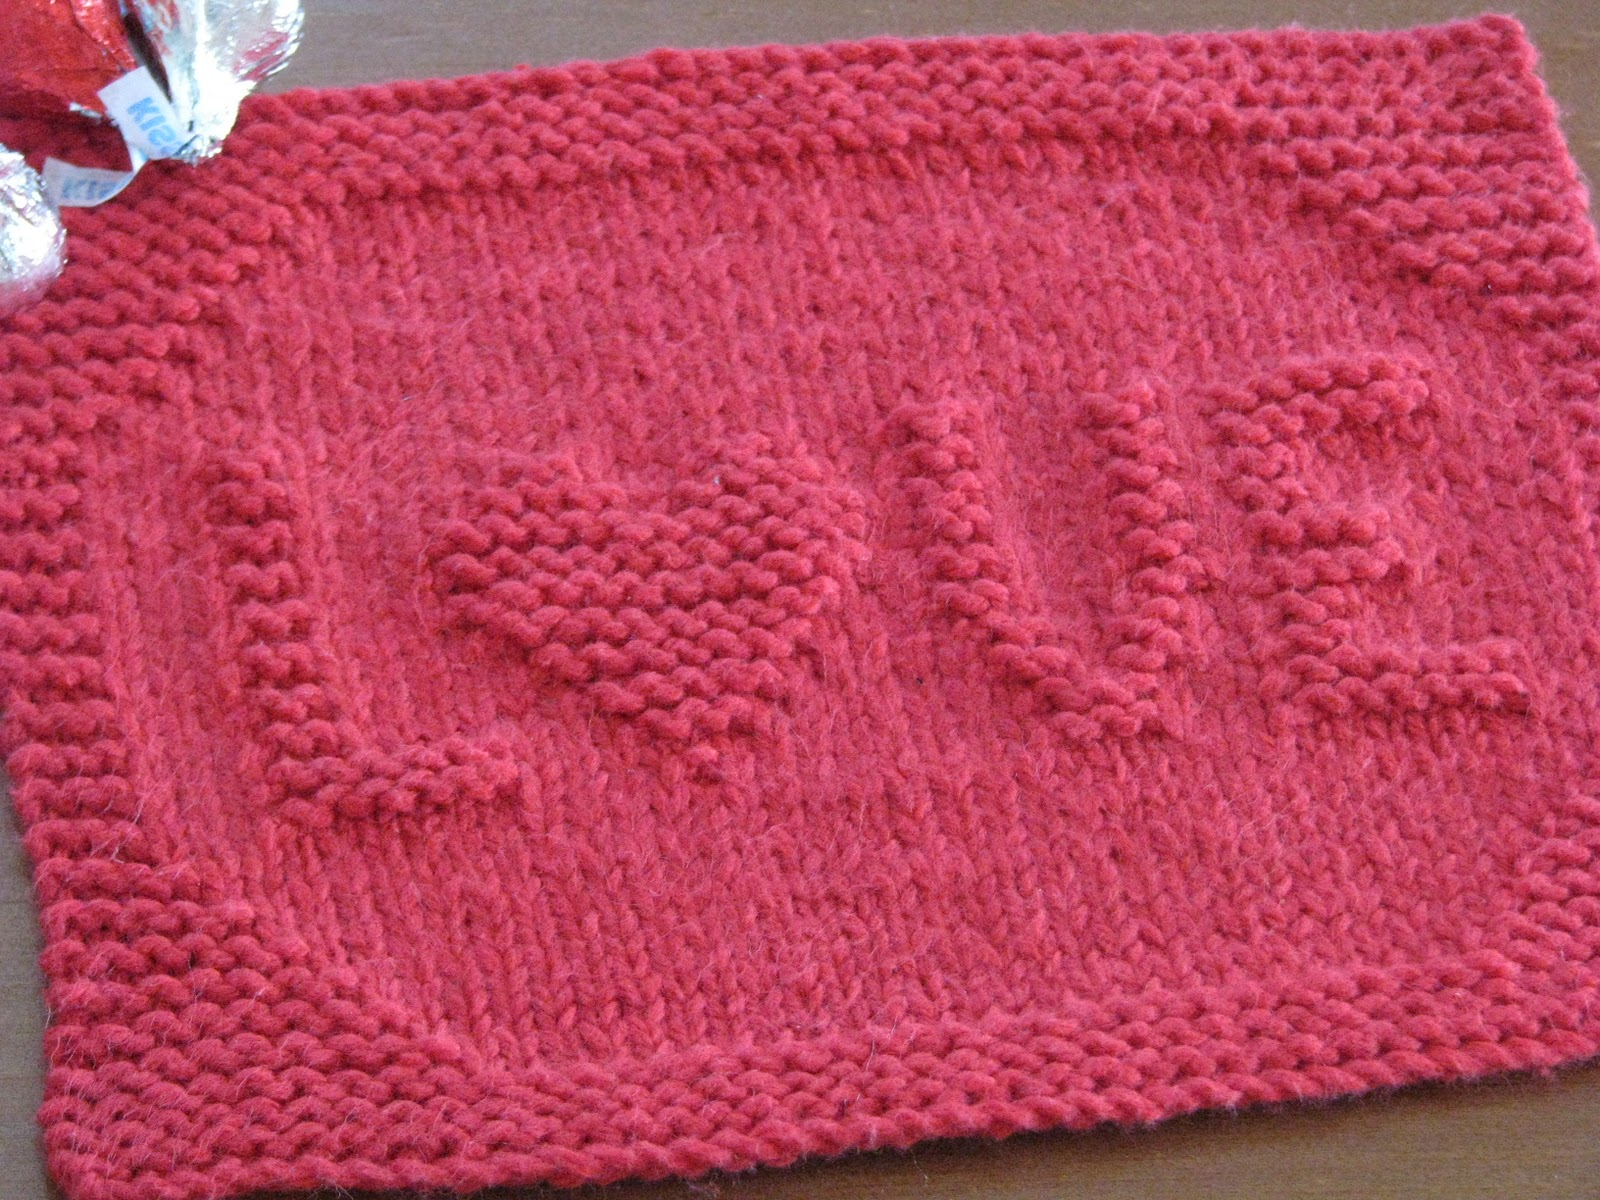 Knit Dishcloths Free Patterns : One Crafty Mama: LOVE Dishcloth